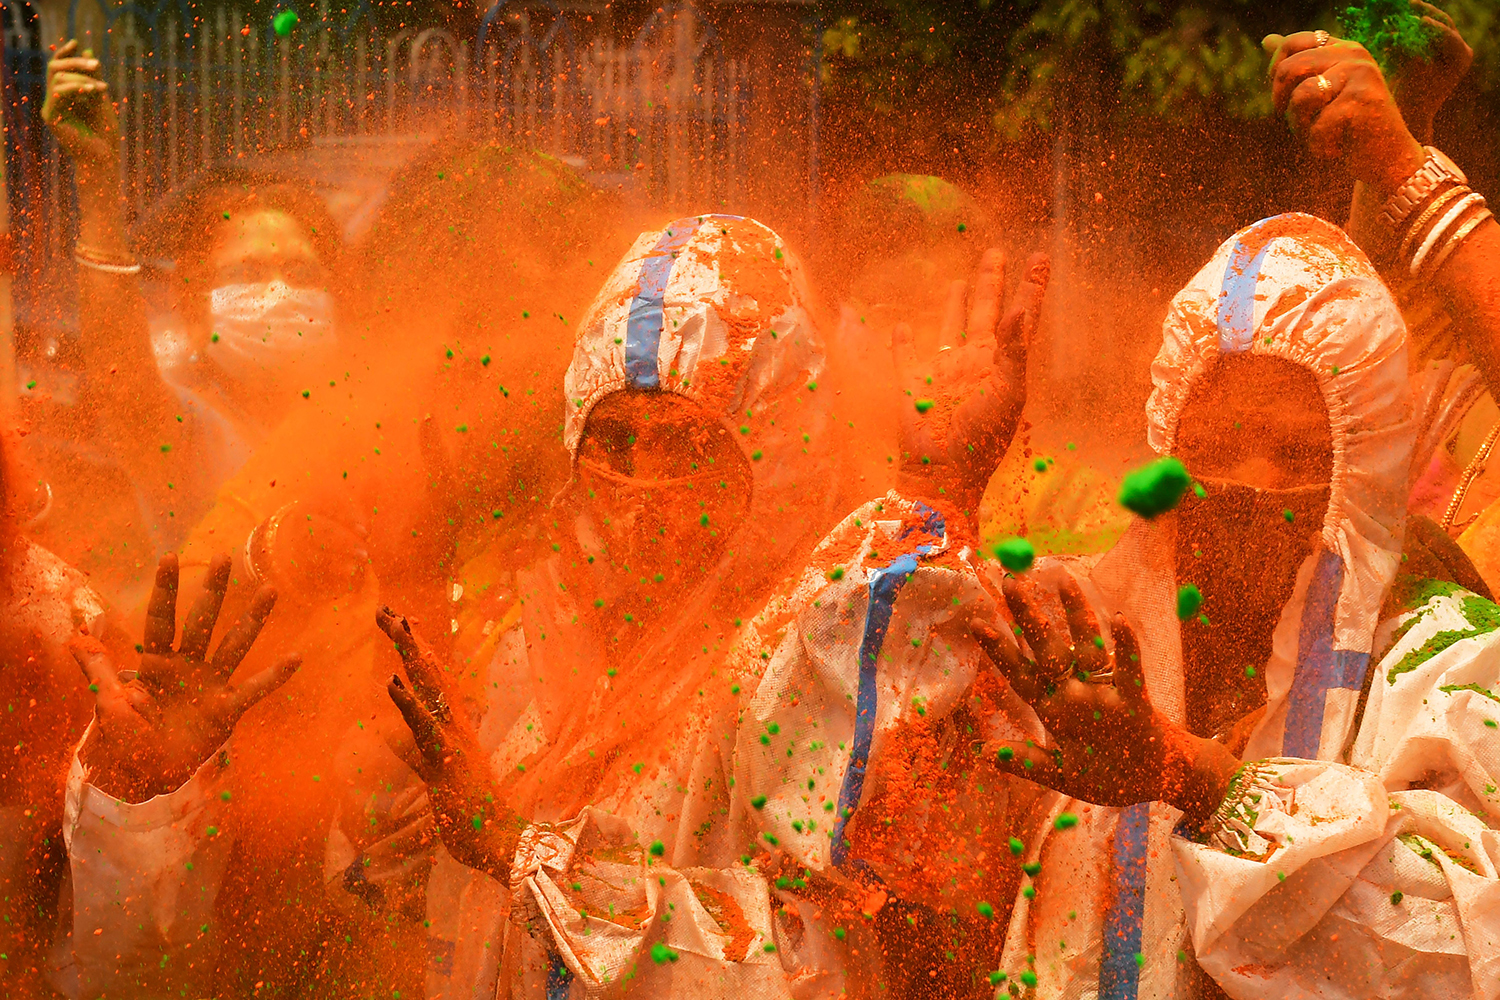 People wearing protective suits as a preventive measure against the spread of COVID-19, play with colored powders as they celebrate Holi, the spring festival of colors, in Kolkata, India, on March 29. DIBYANGSHU SARKAR/AFP via Getty Images